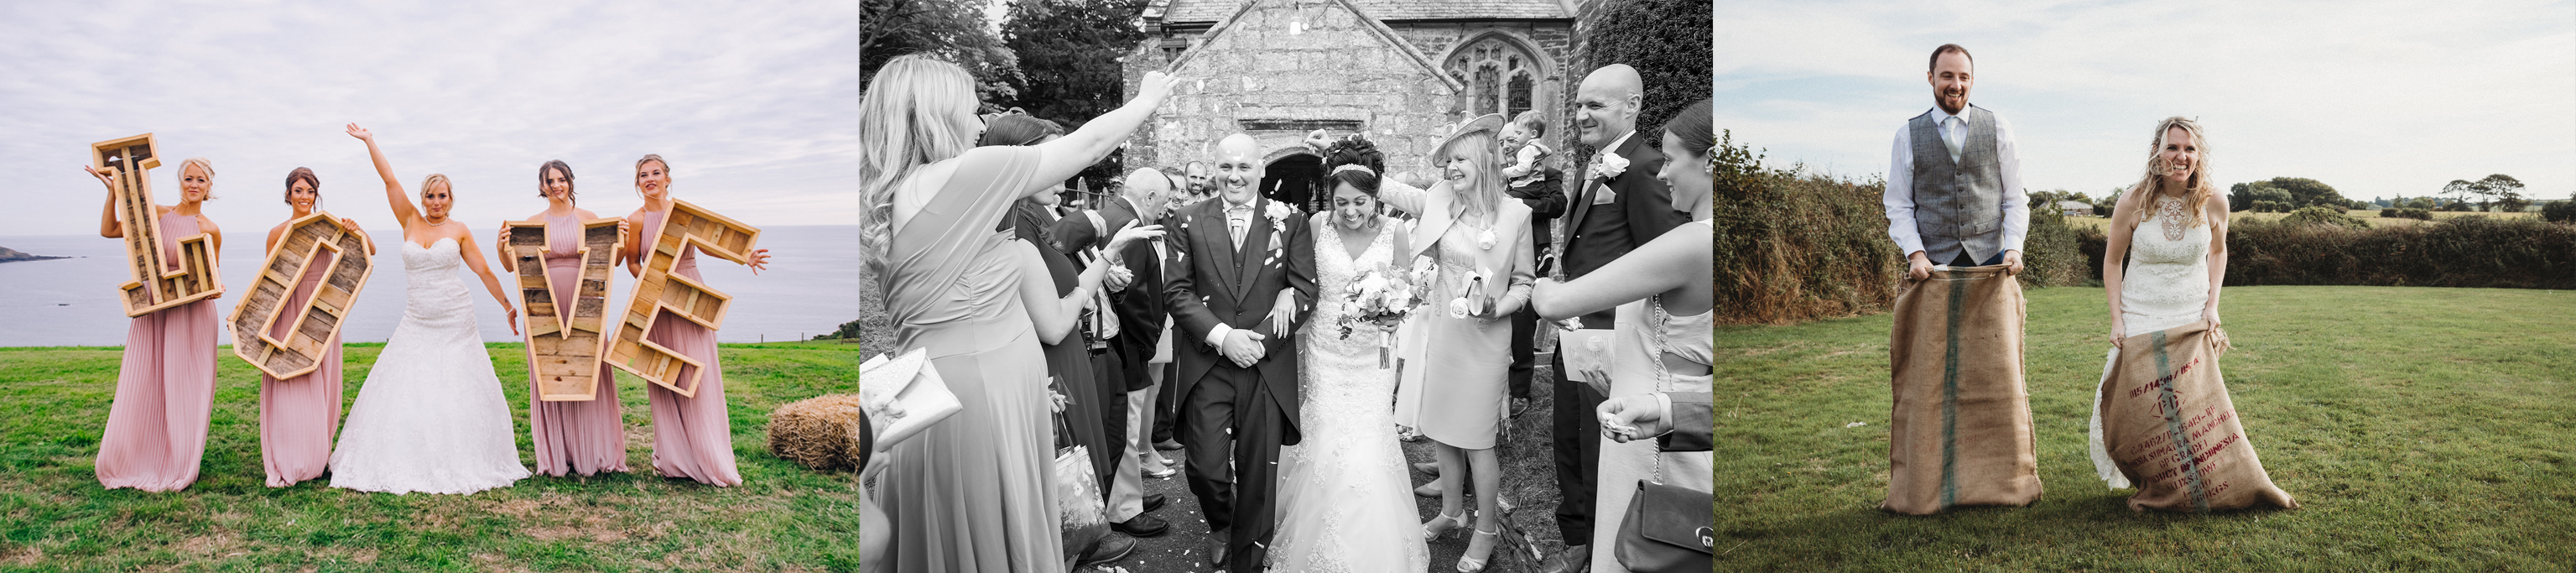 wedding photography cornwall 1